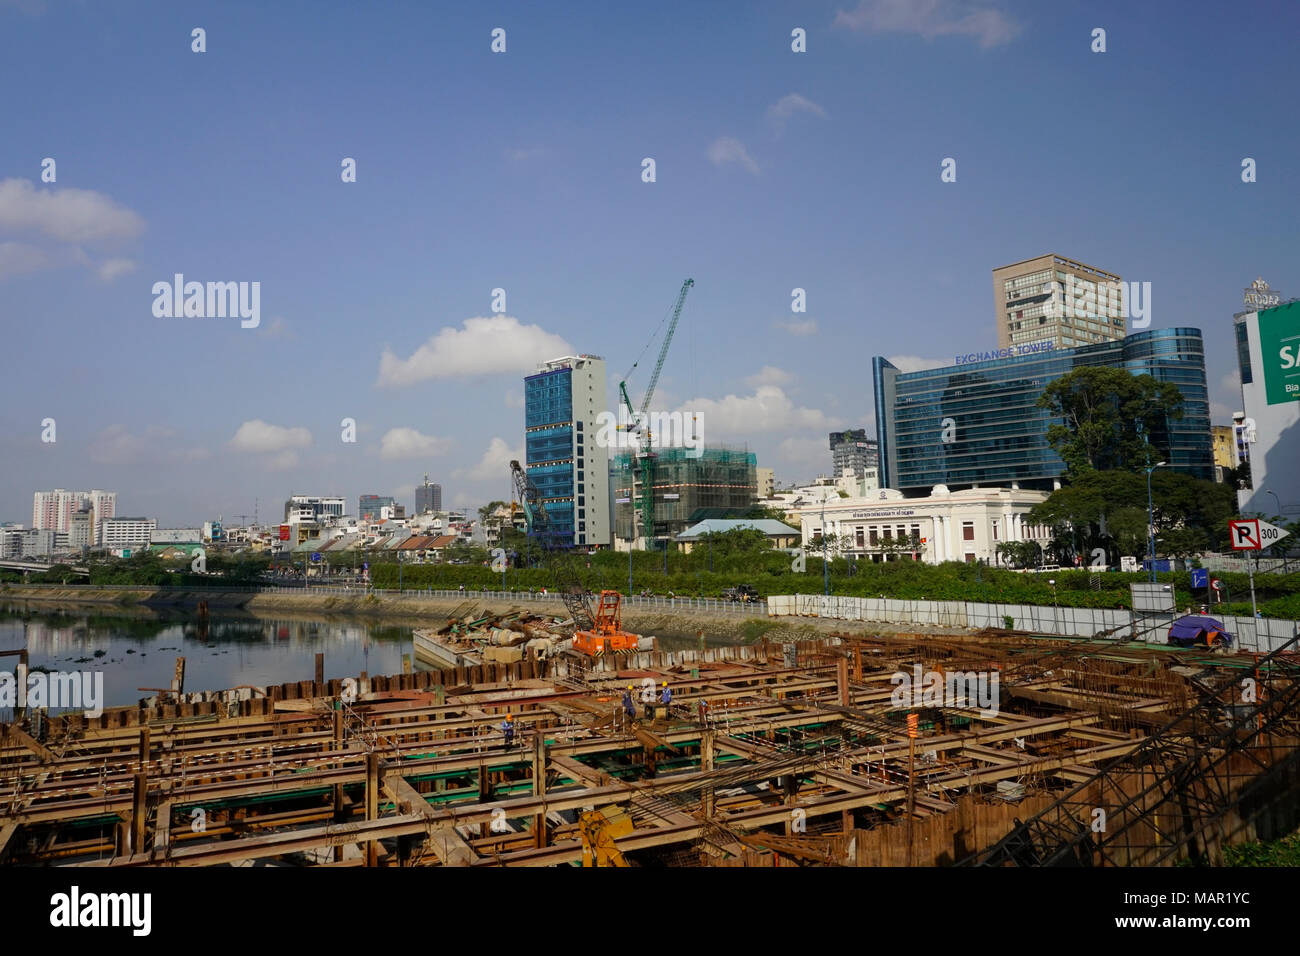 Flood & waste rwater  control structure being built next to the Cau Mong Bridge & Rach Ben Nghe canal, a tributary of the Saigon River, District One - Stock Image